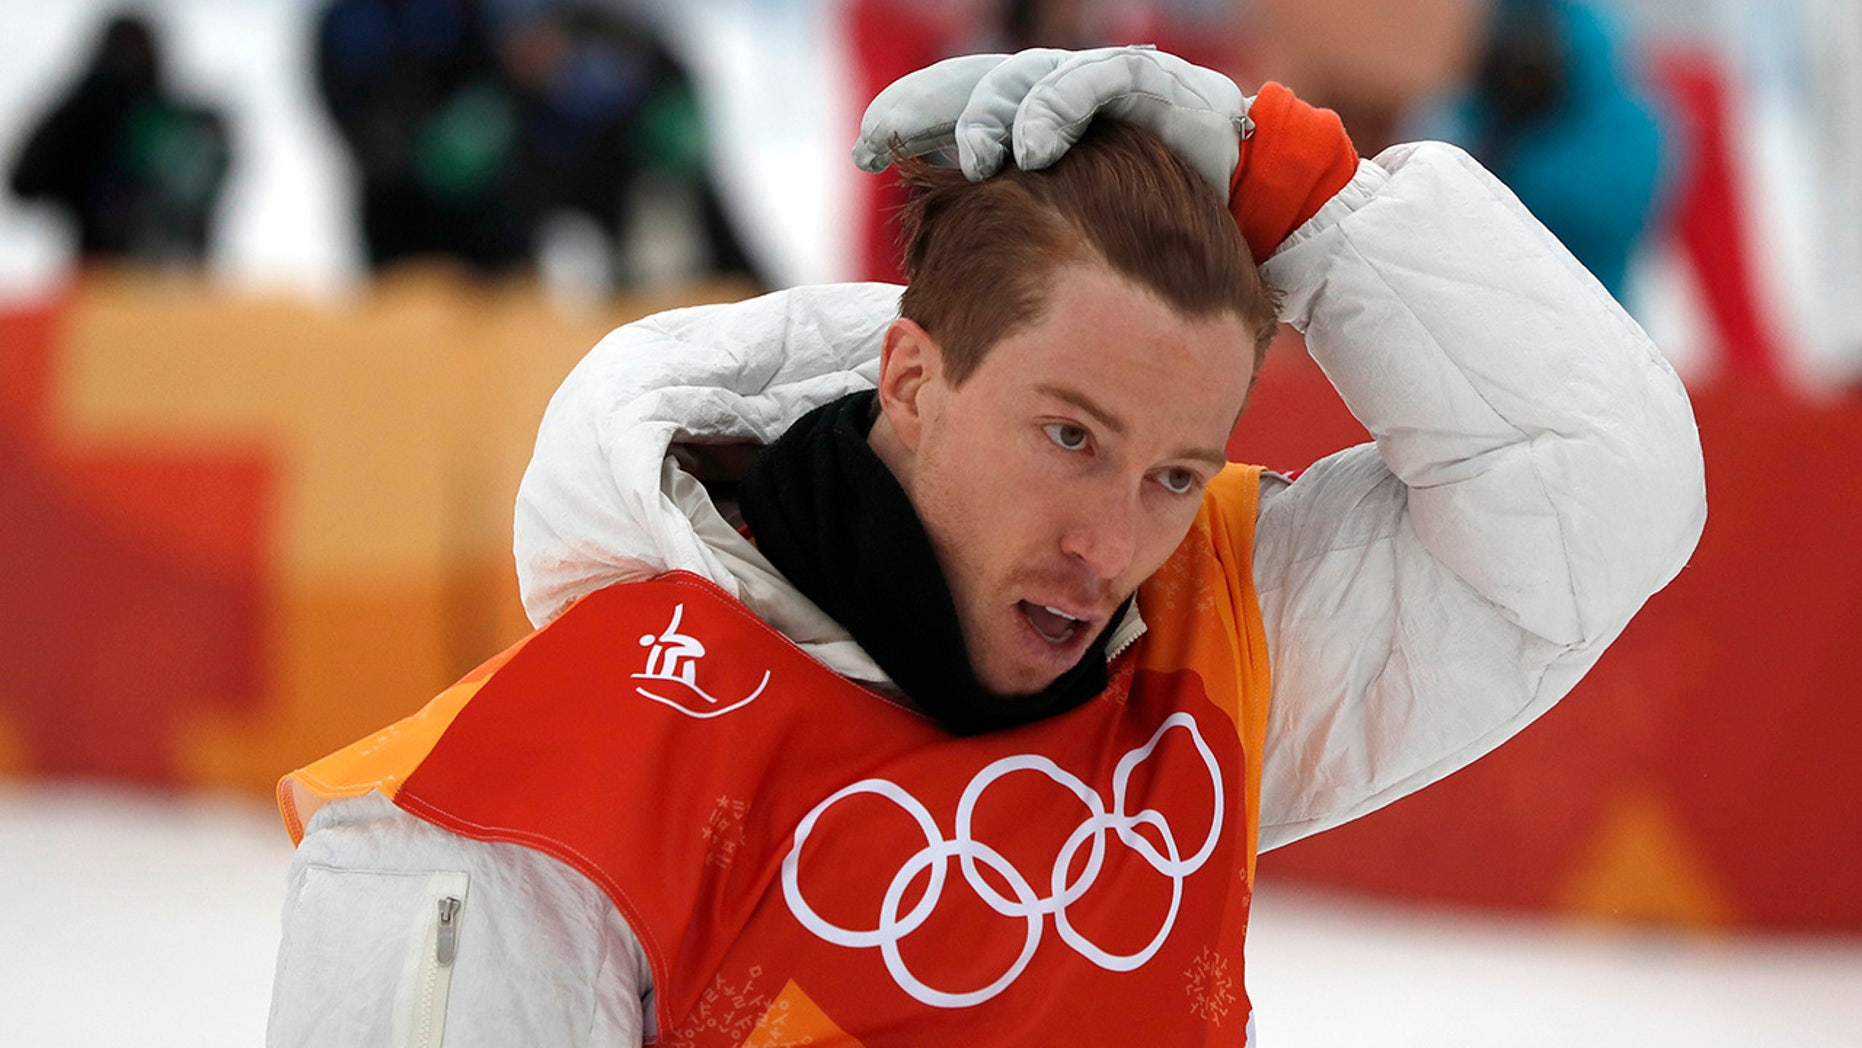 Shaun White was lit up on social media after appearing to drag the American flag on the ground.